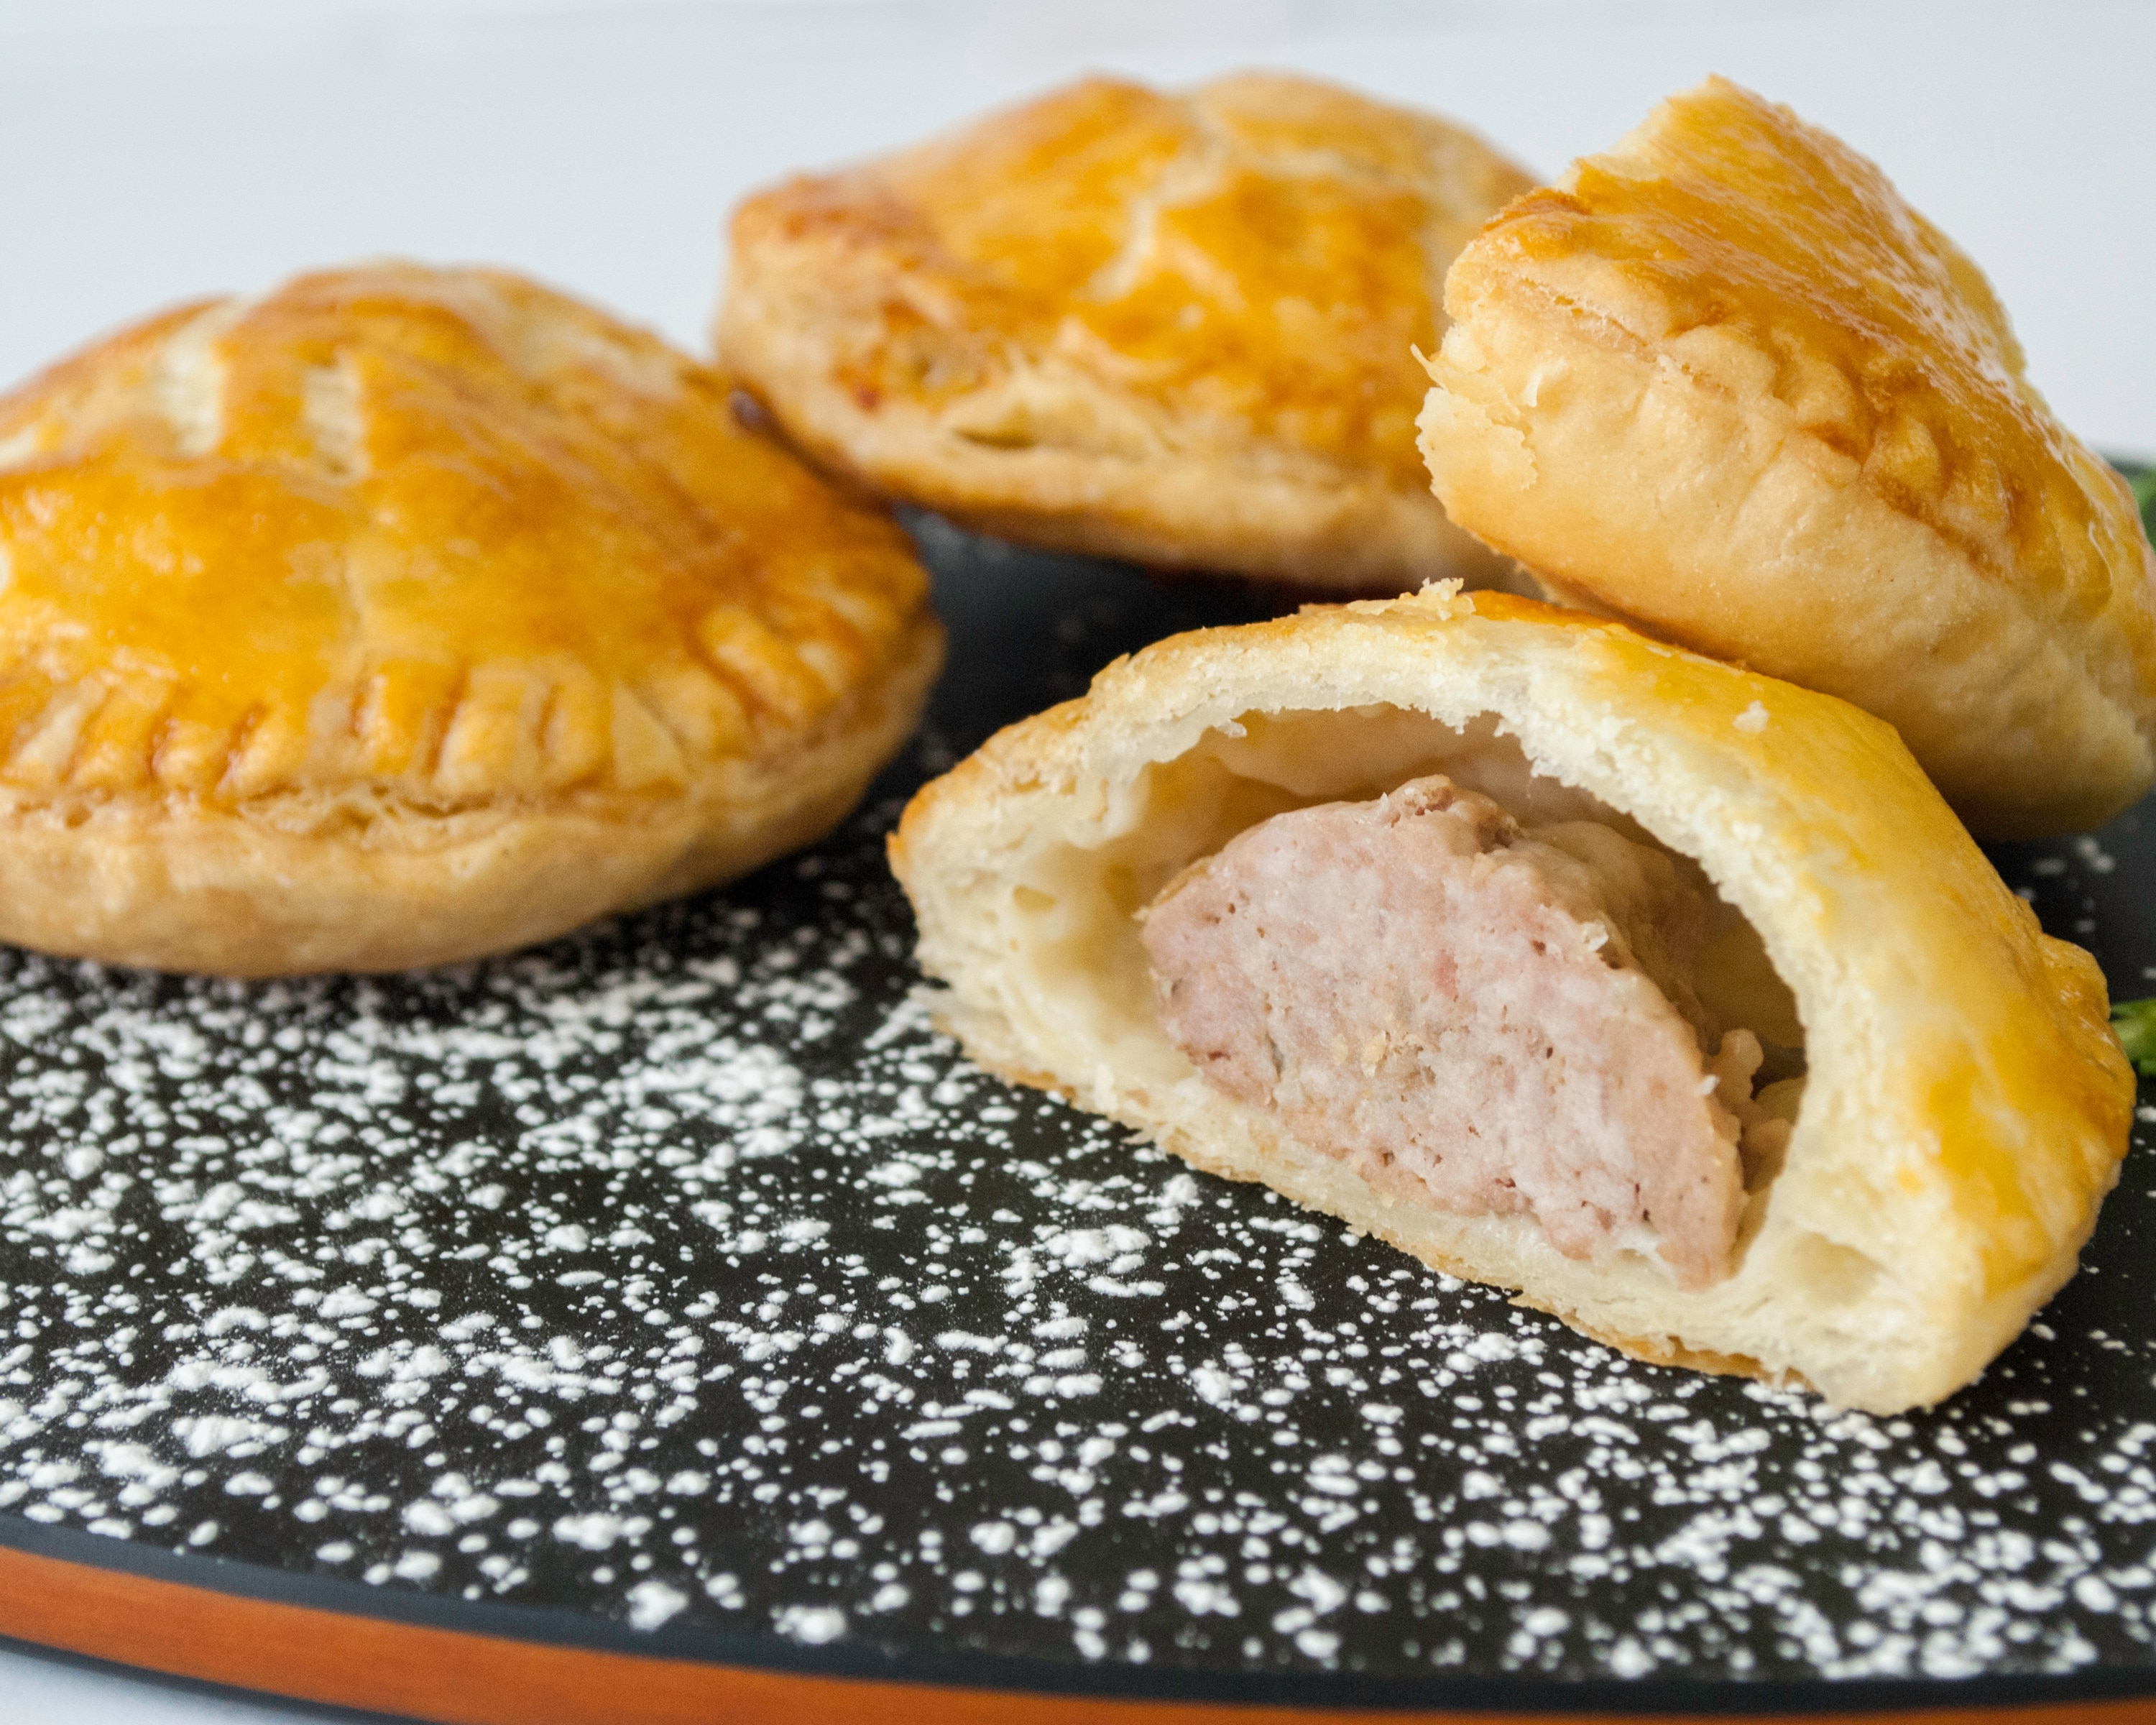 Hot Meat Pies One World Kitchen Sbs Food